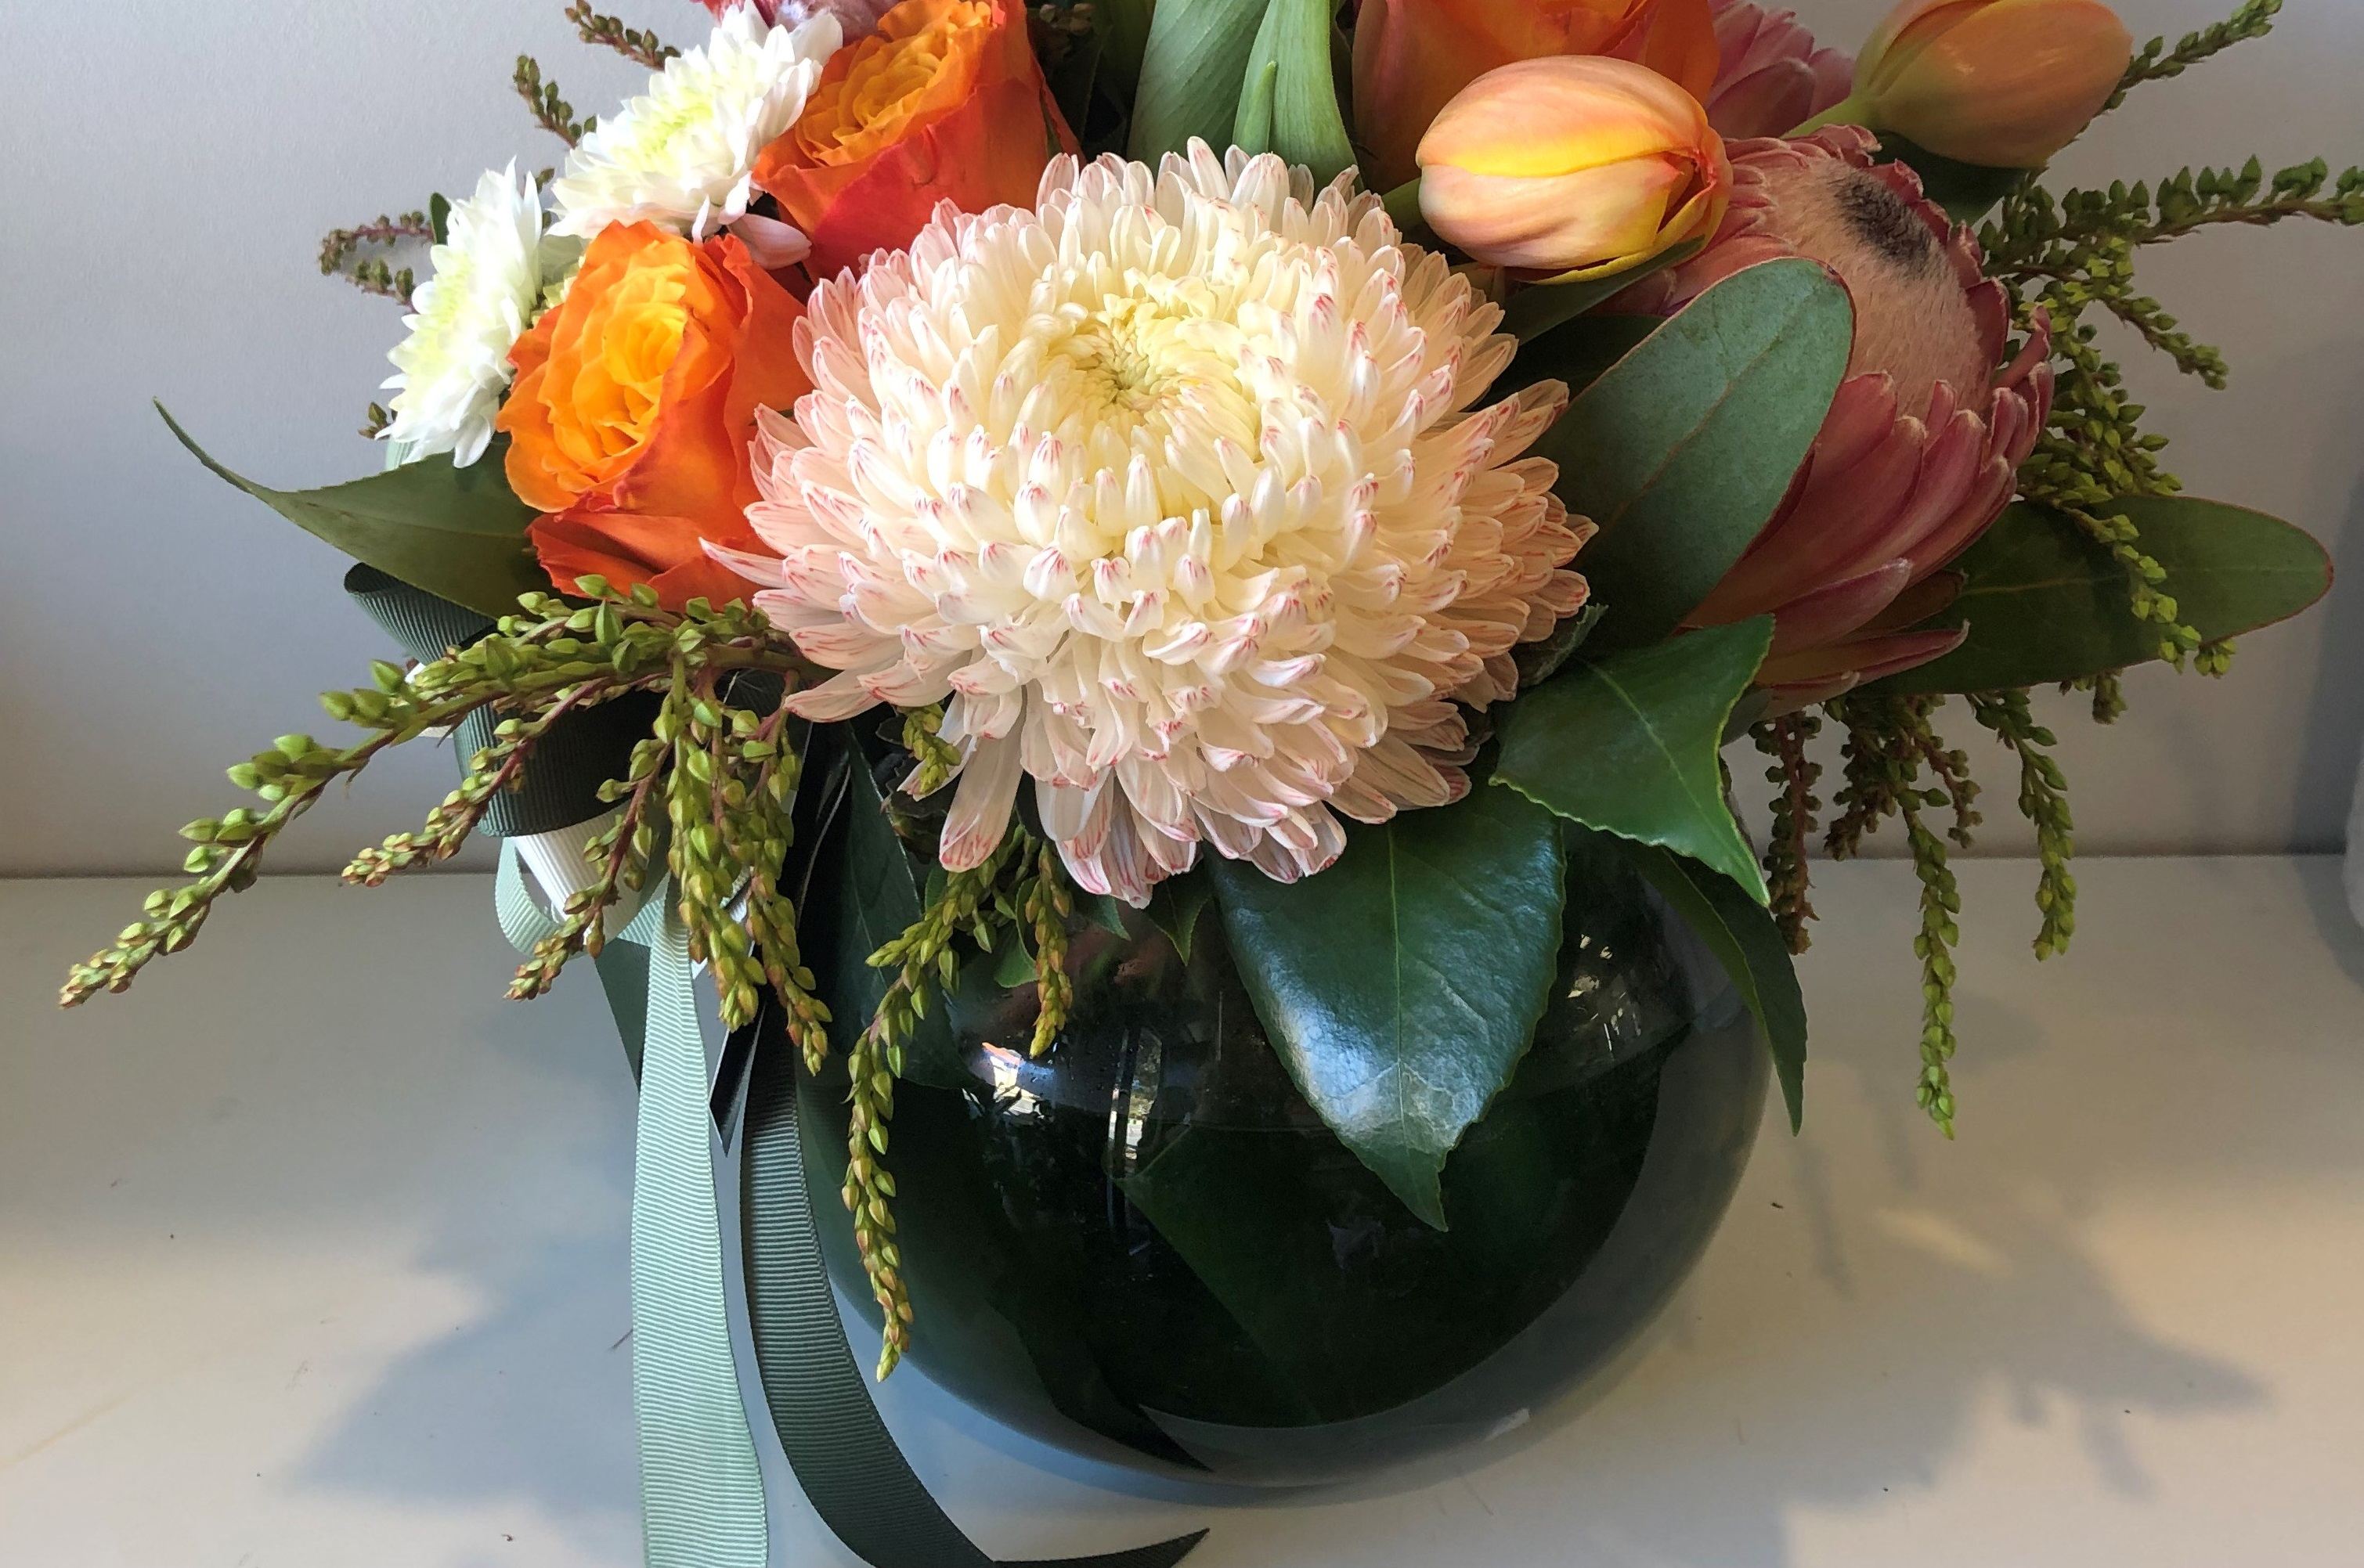 fishbowl vase arrangement